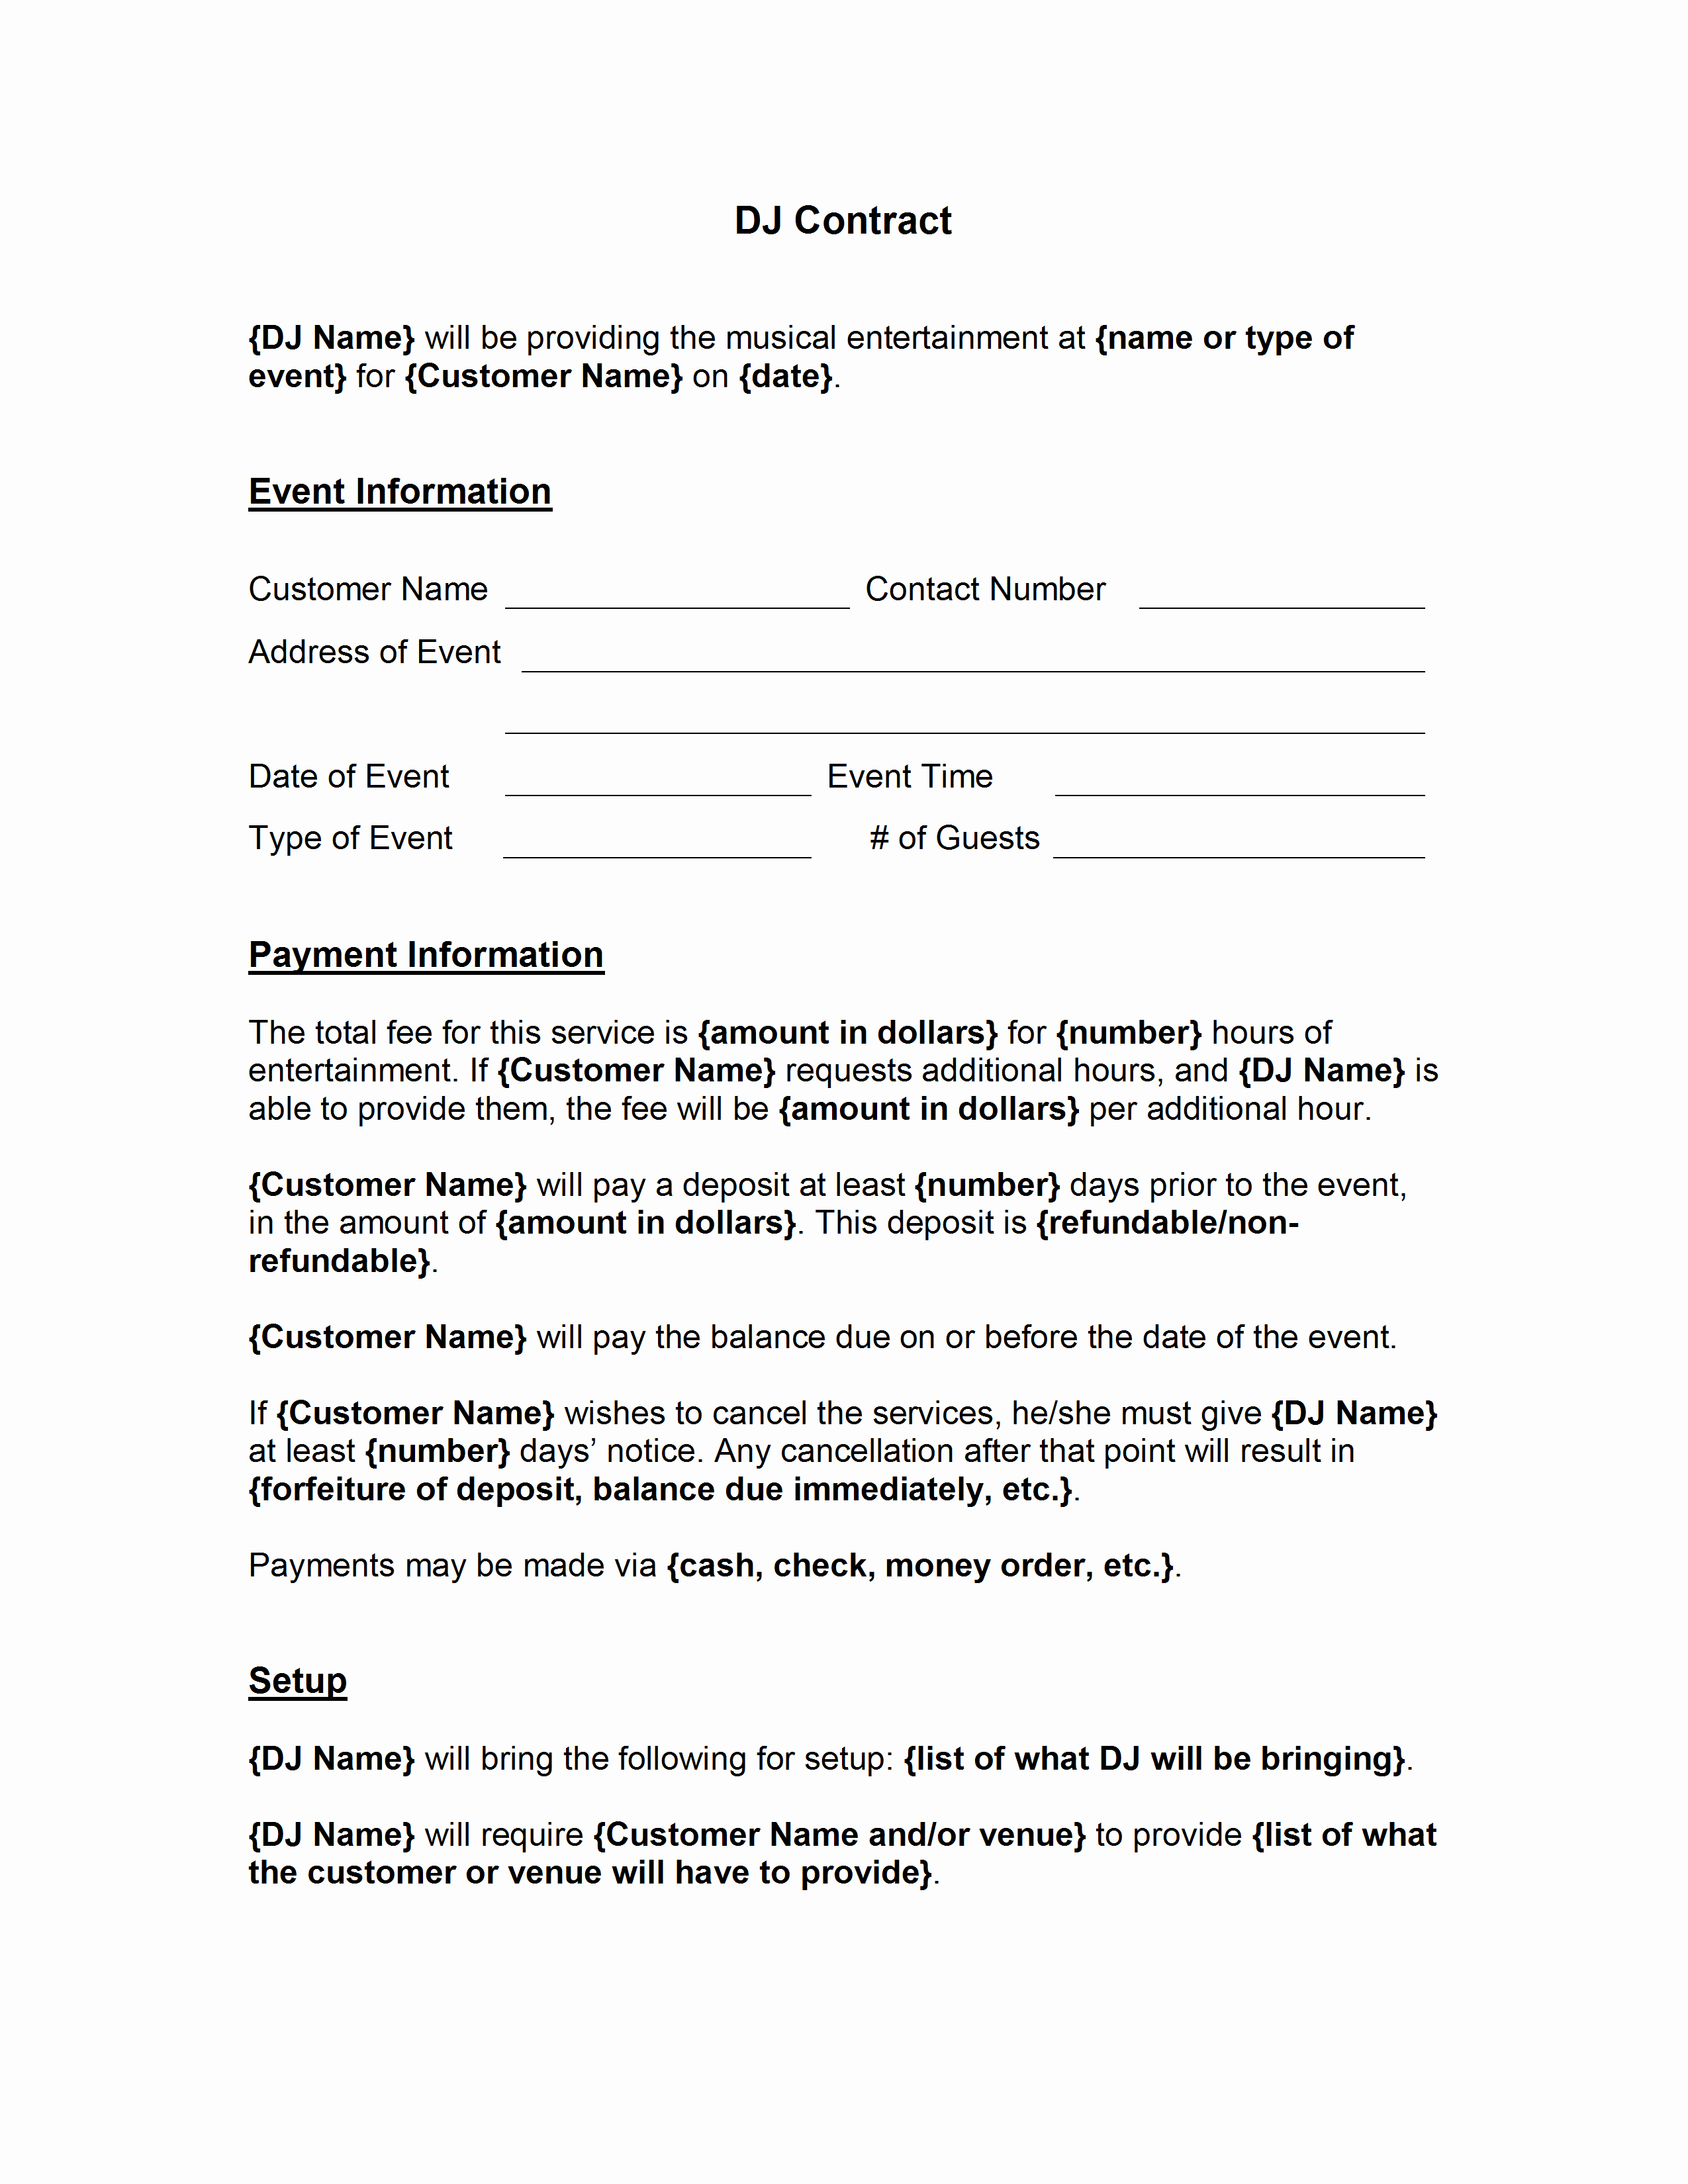 Wedding Dj Contract Template New Dj Contract Template